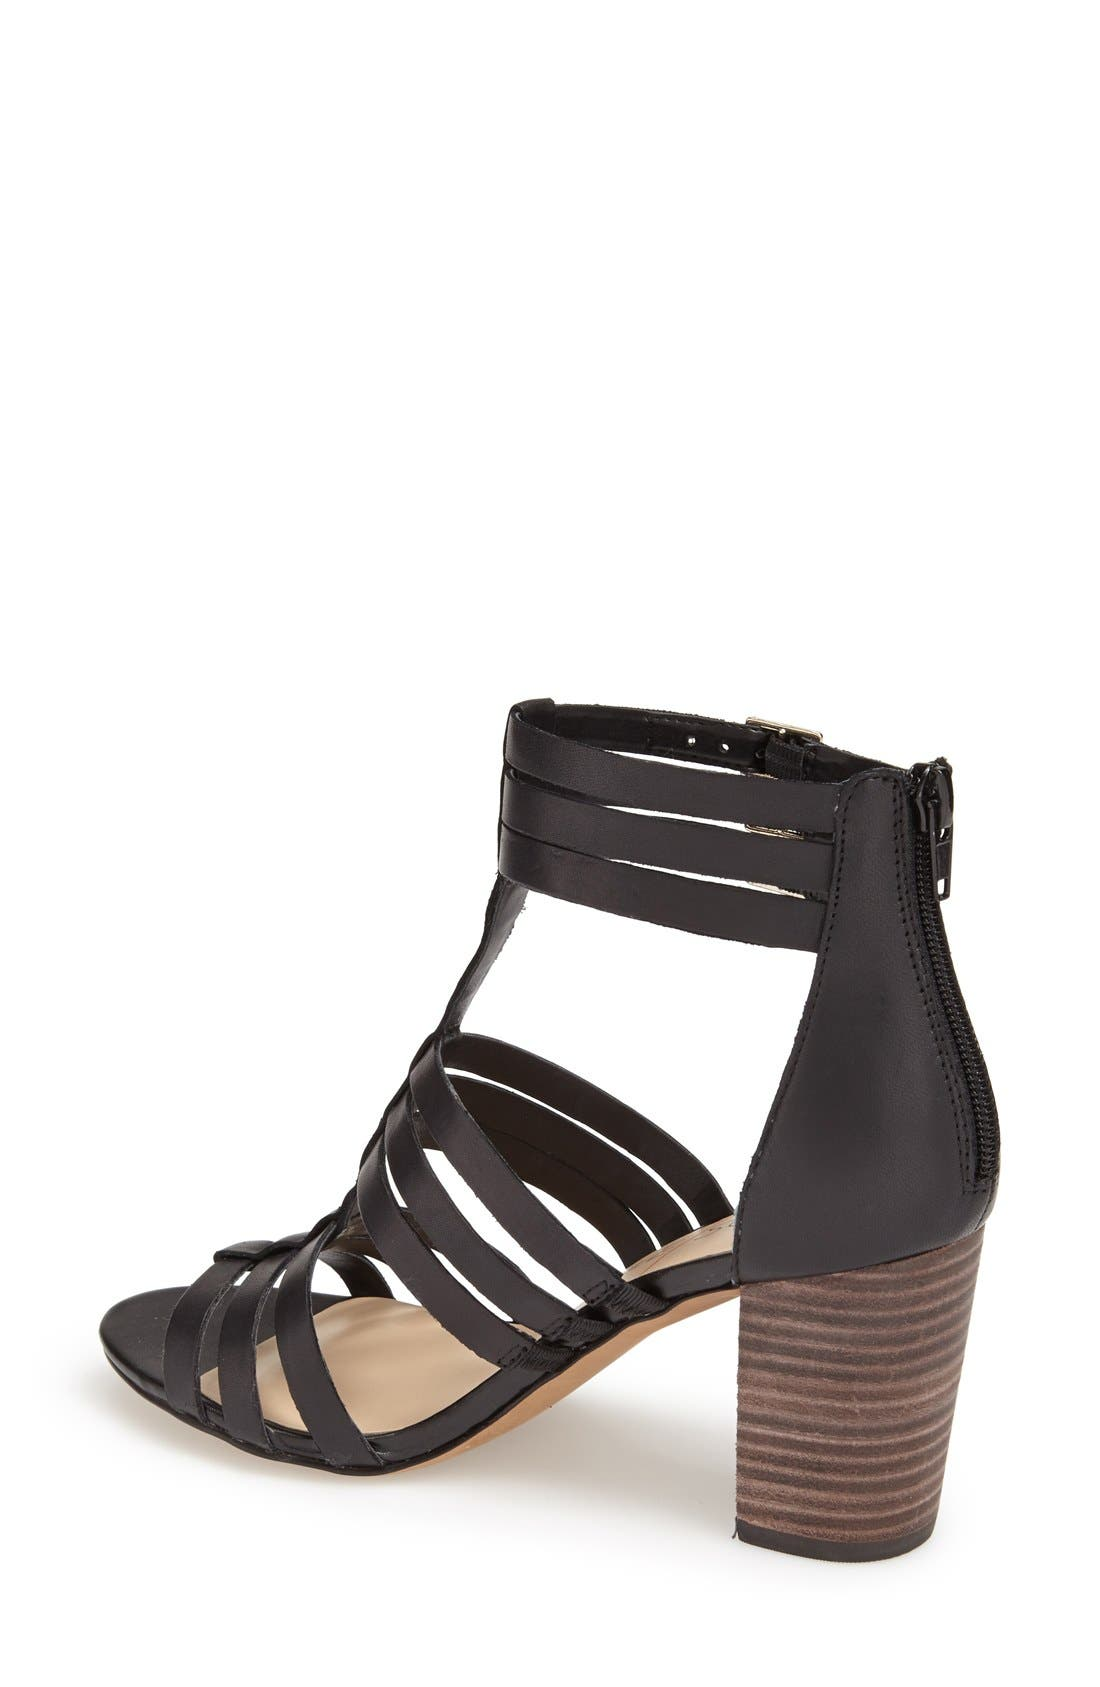 'Elise' Gladiator Sandal,                             Alternate thumbnail 2, color,                             001